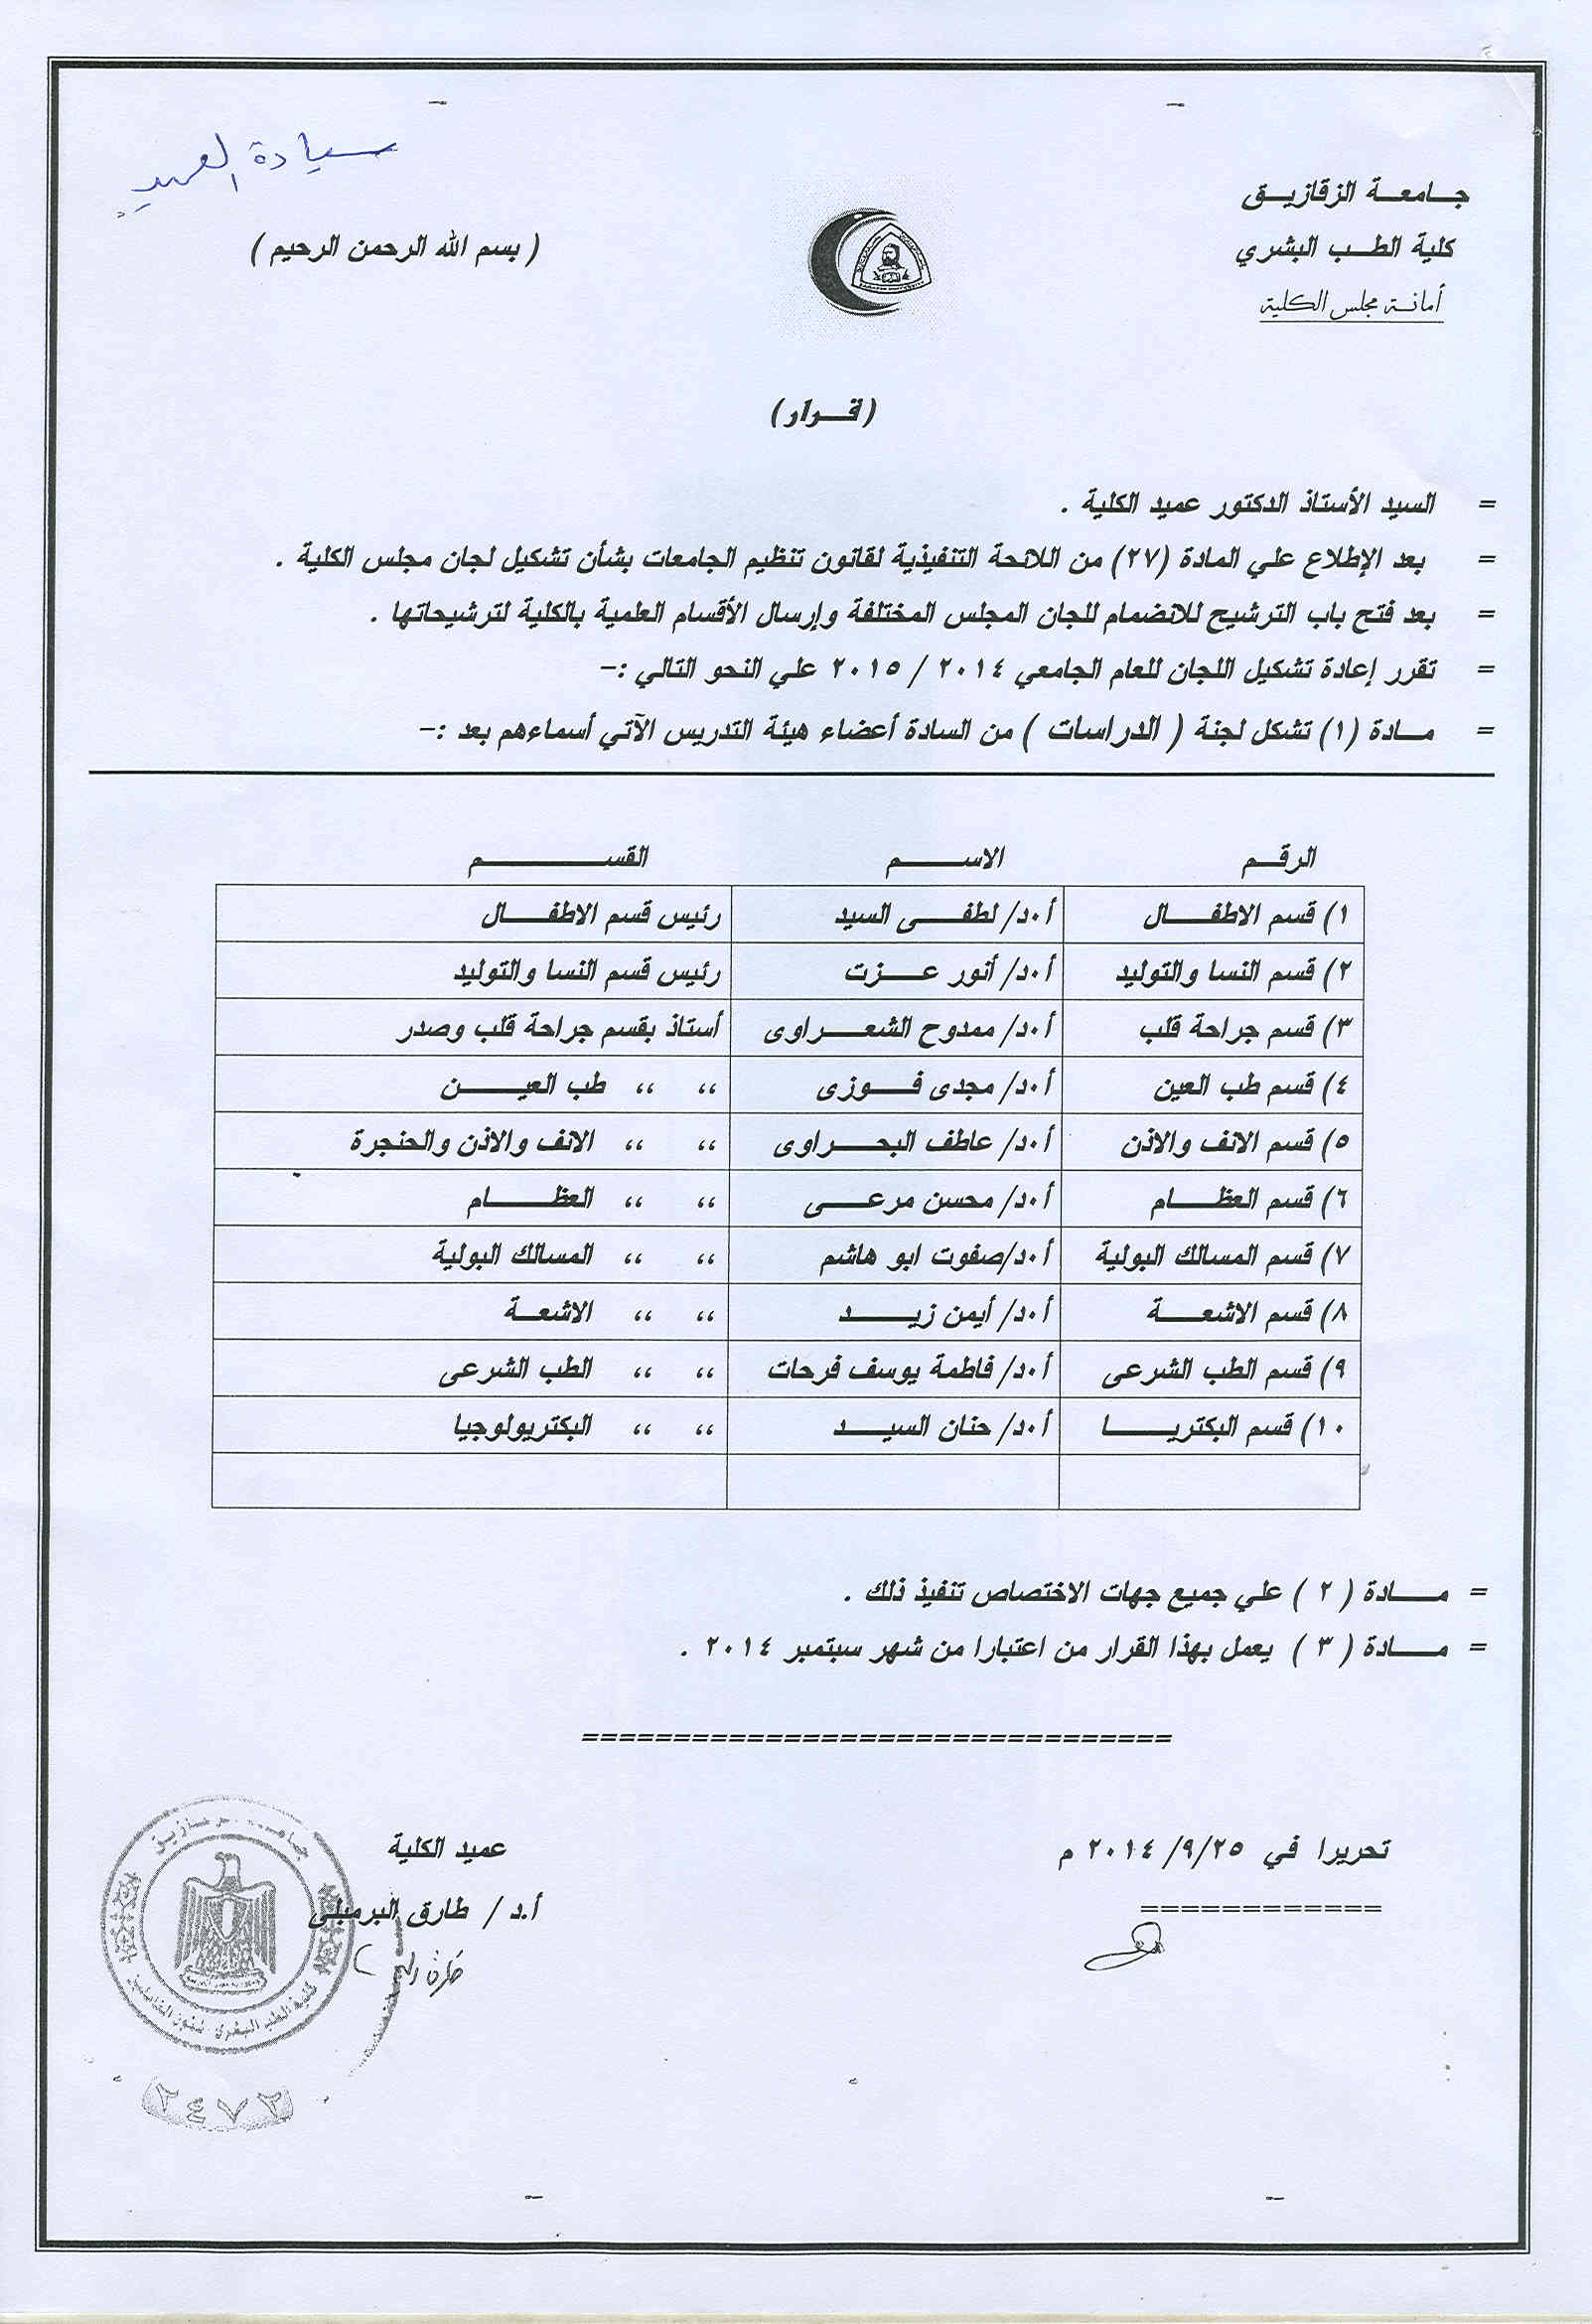 Formation of a committee of Graduate Studies for the year 2014-2015